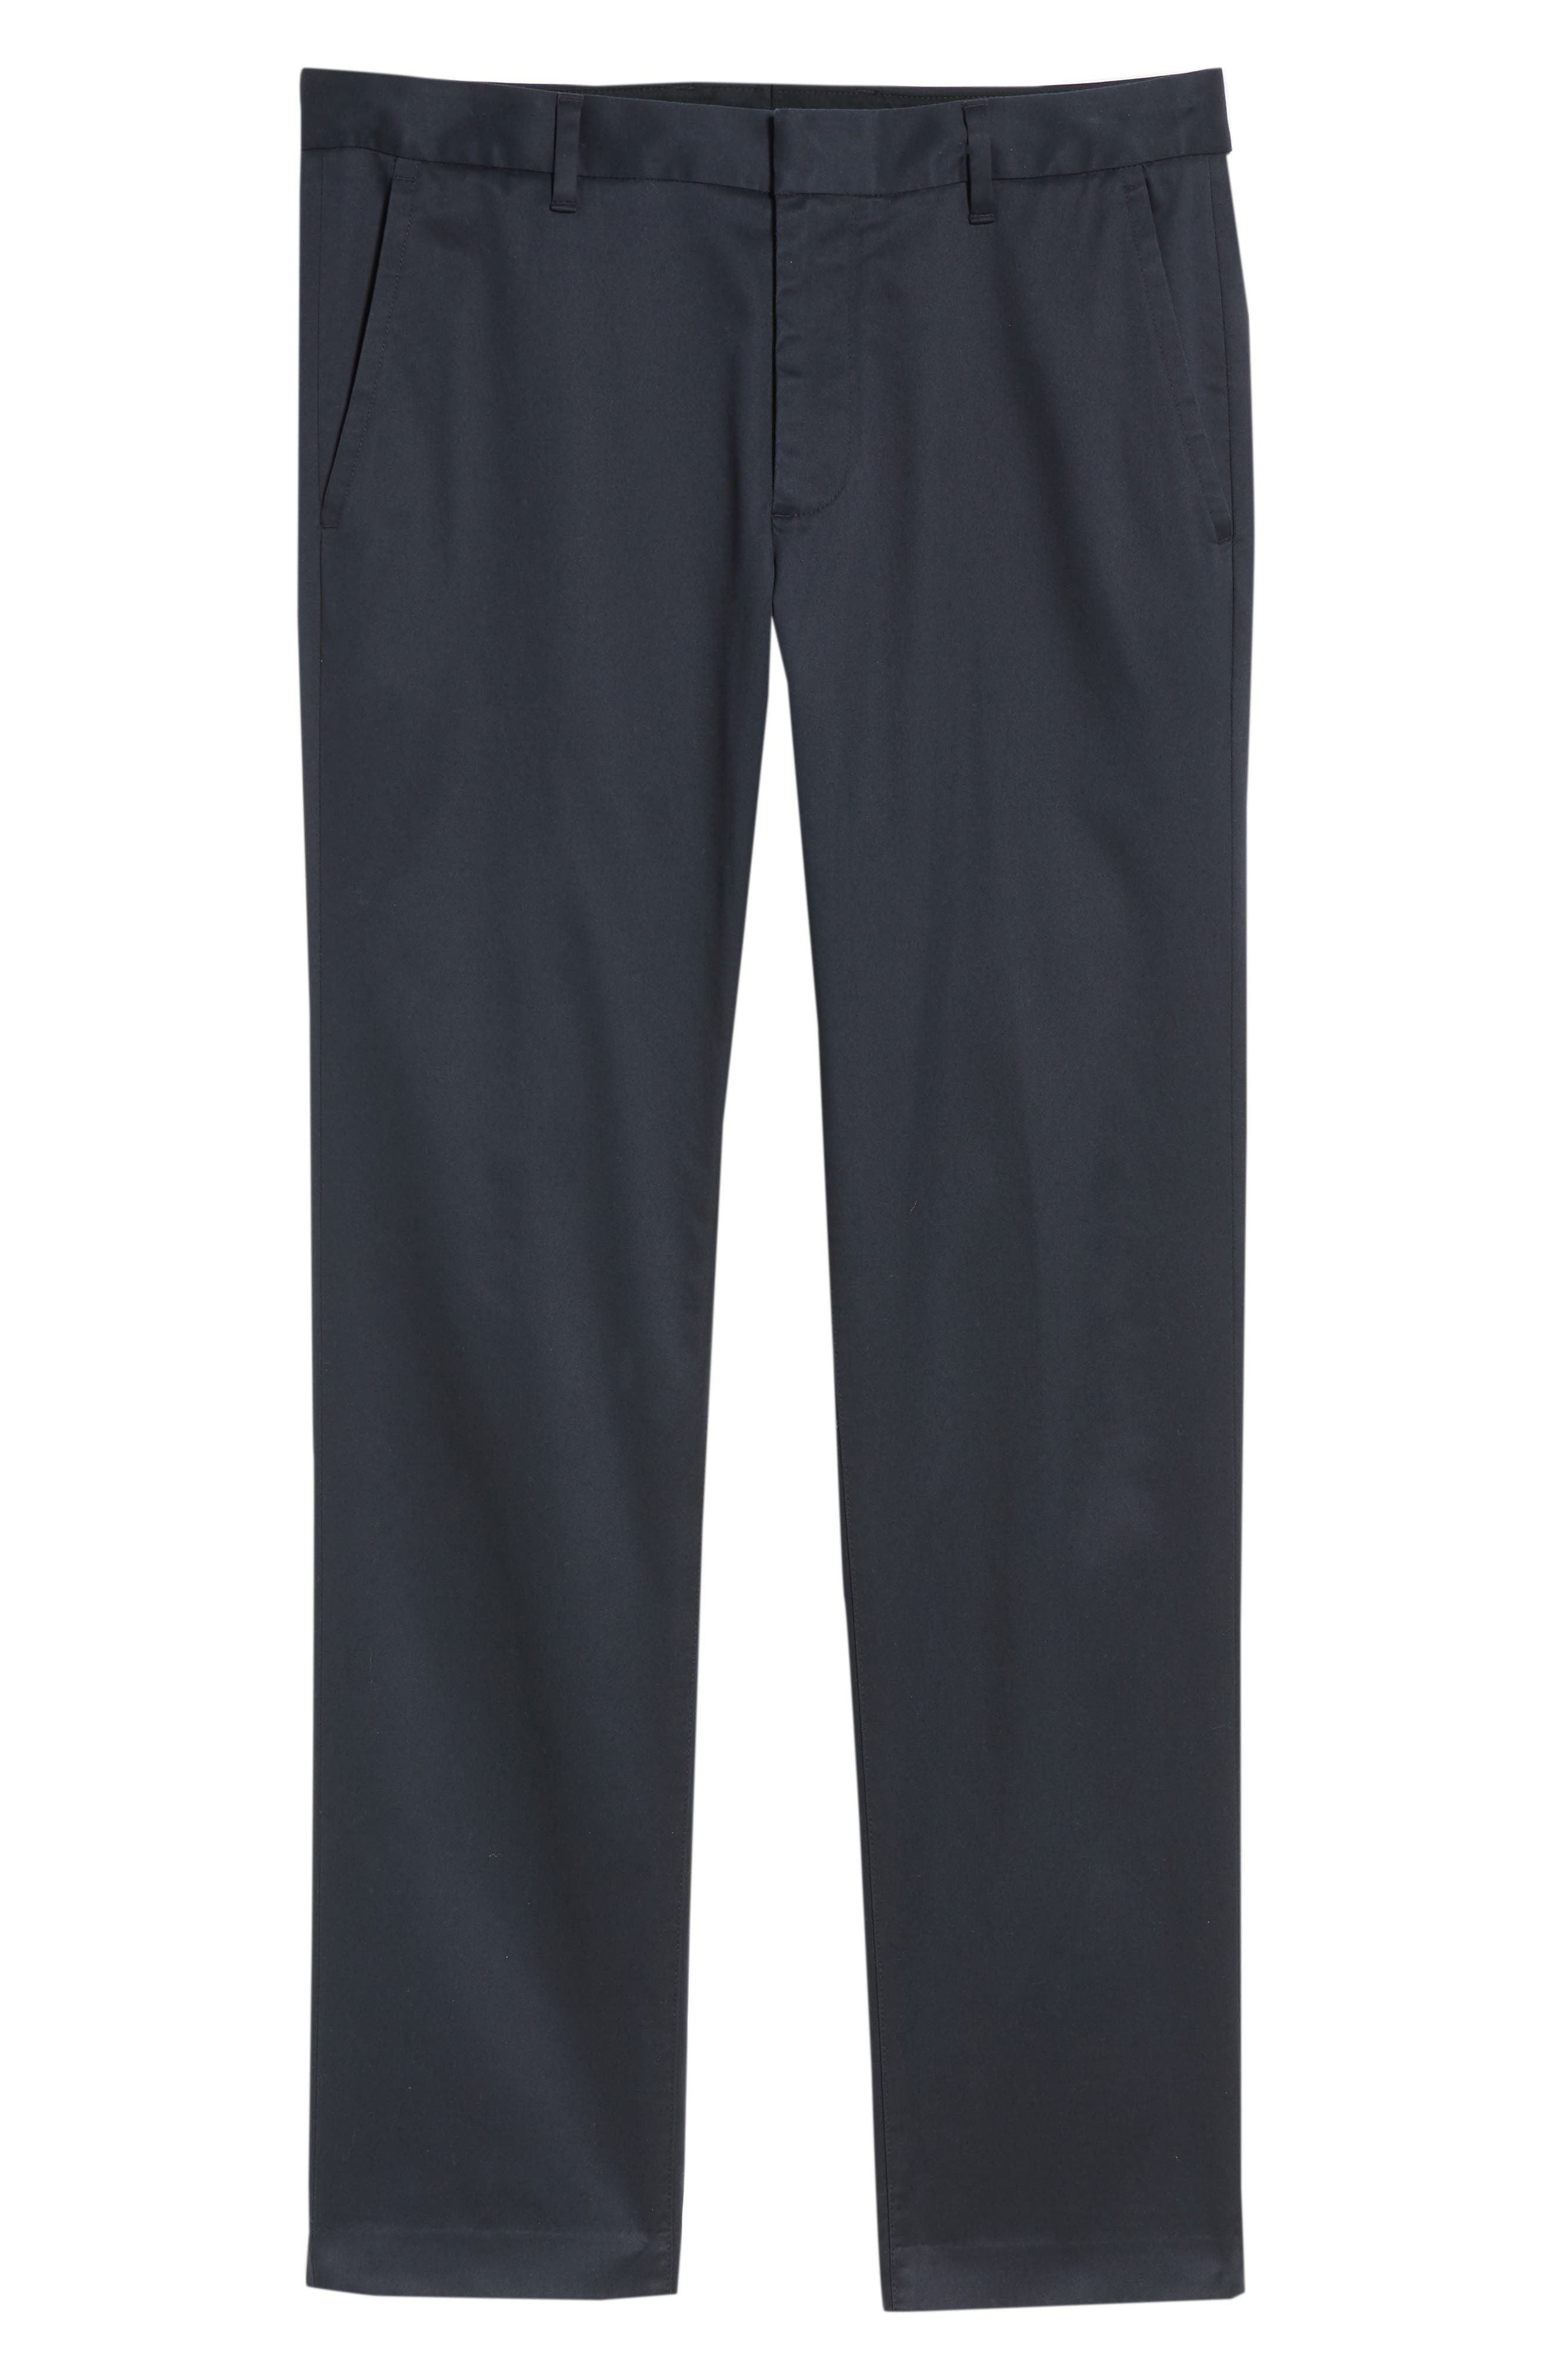 Weekday Warrior Slim Fit Stretch Pants,                             Alternate thumbnail 6, color,                             Monday Blues